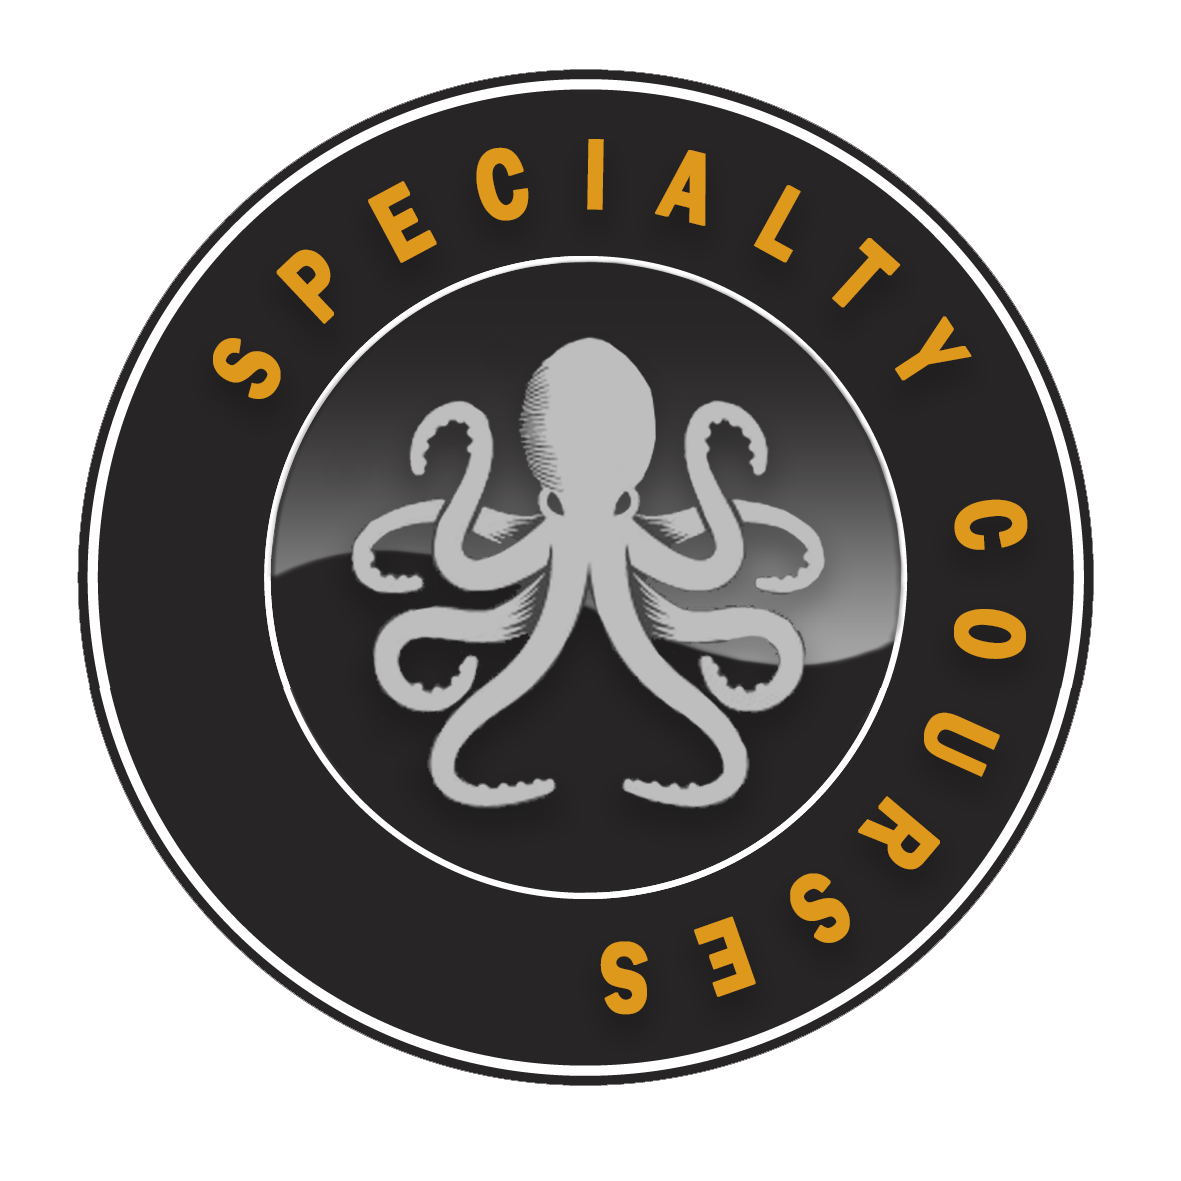 specialty-courses.logo.png